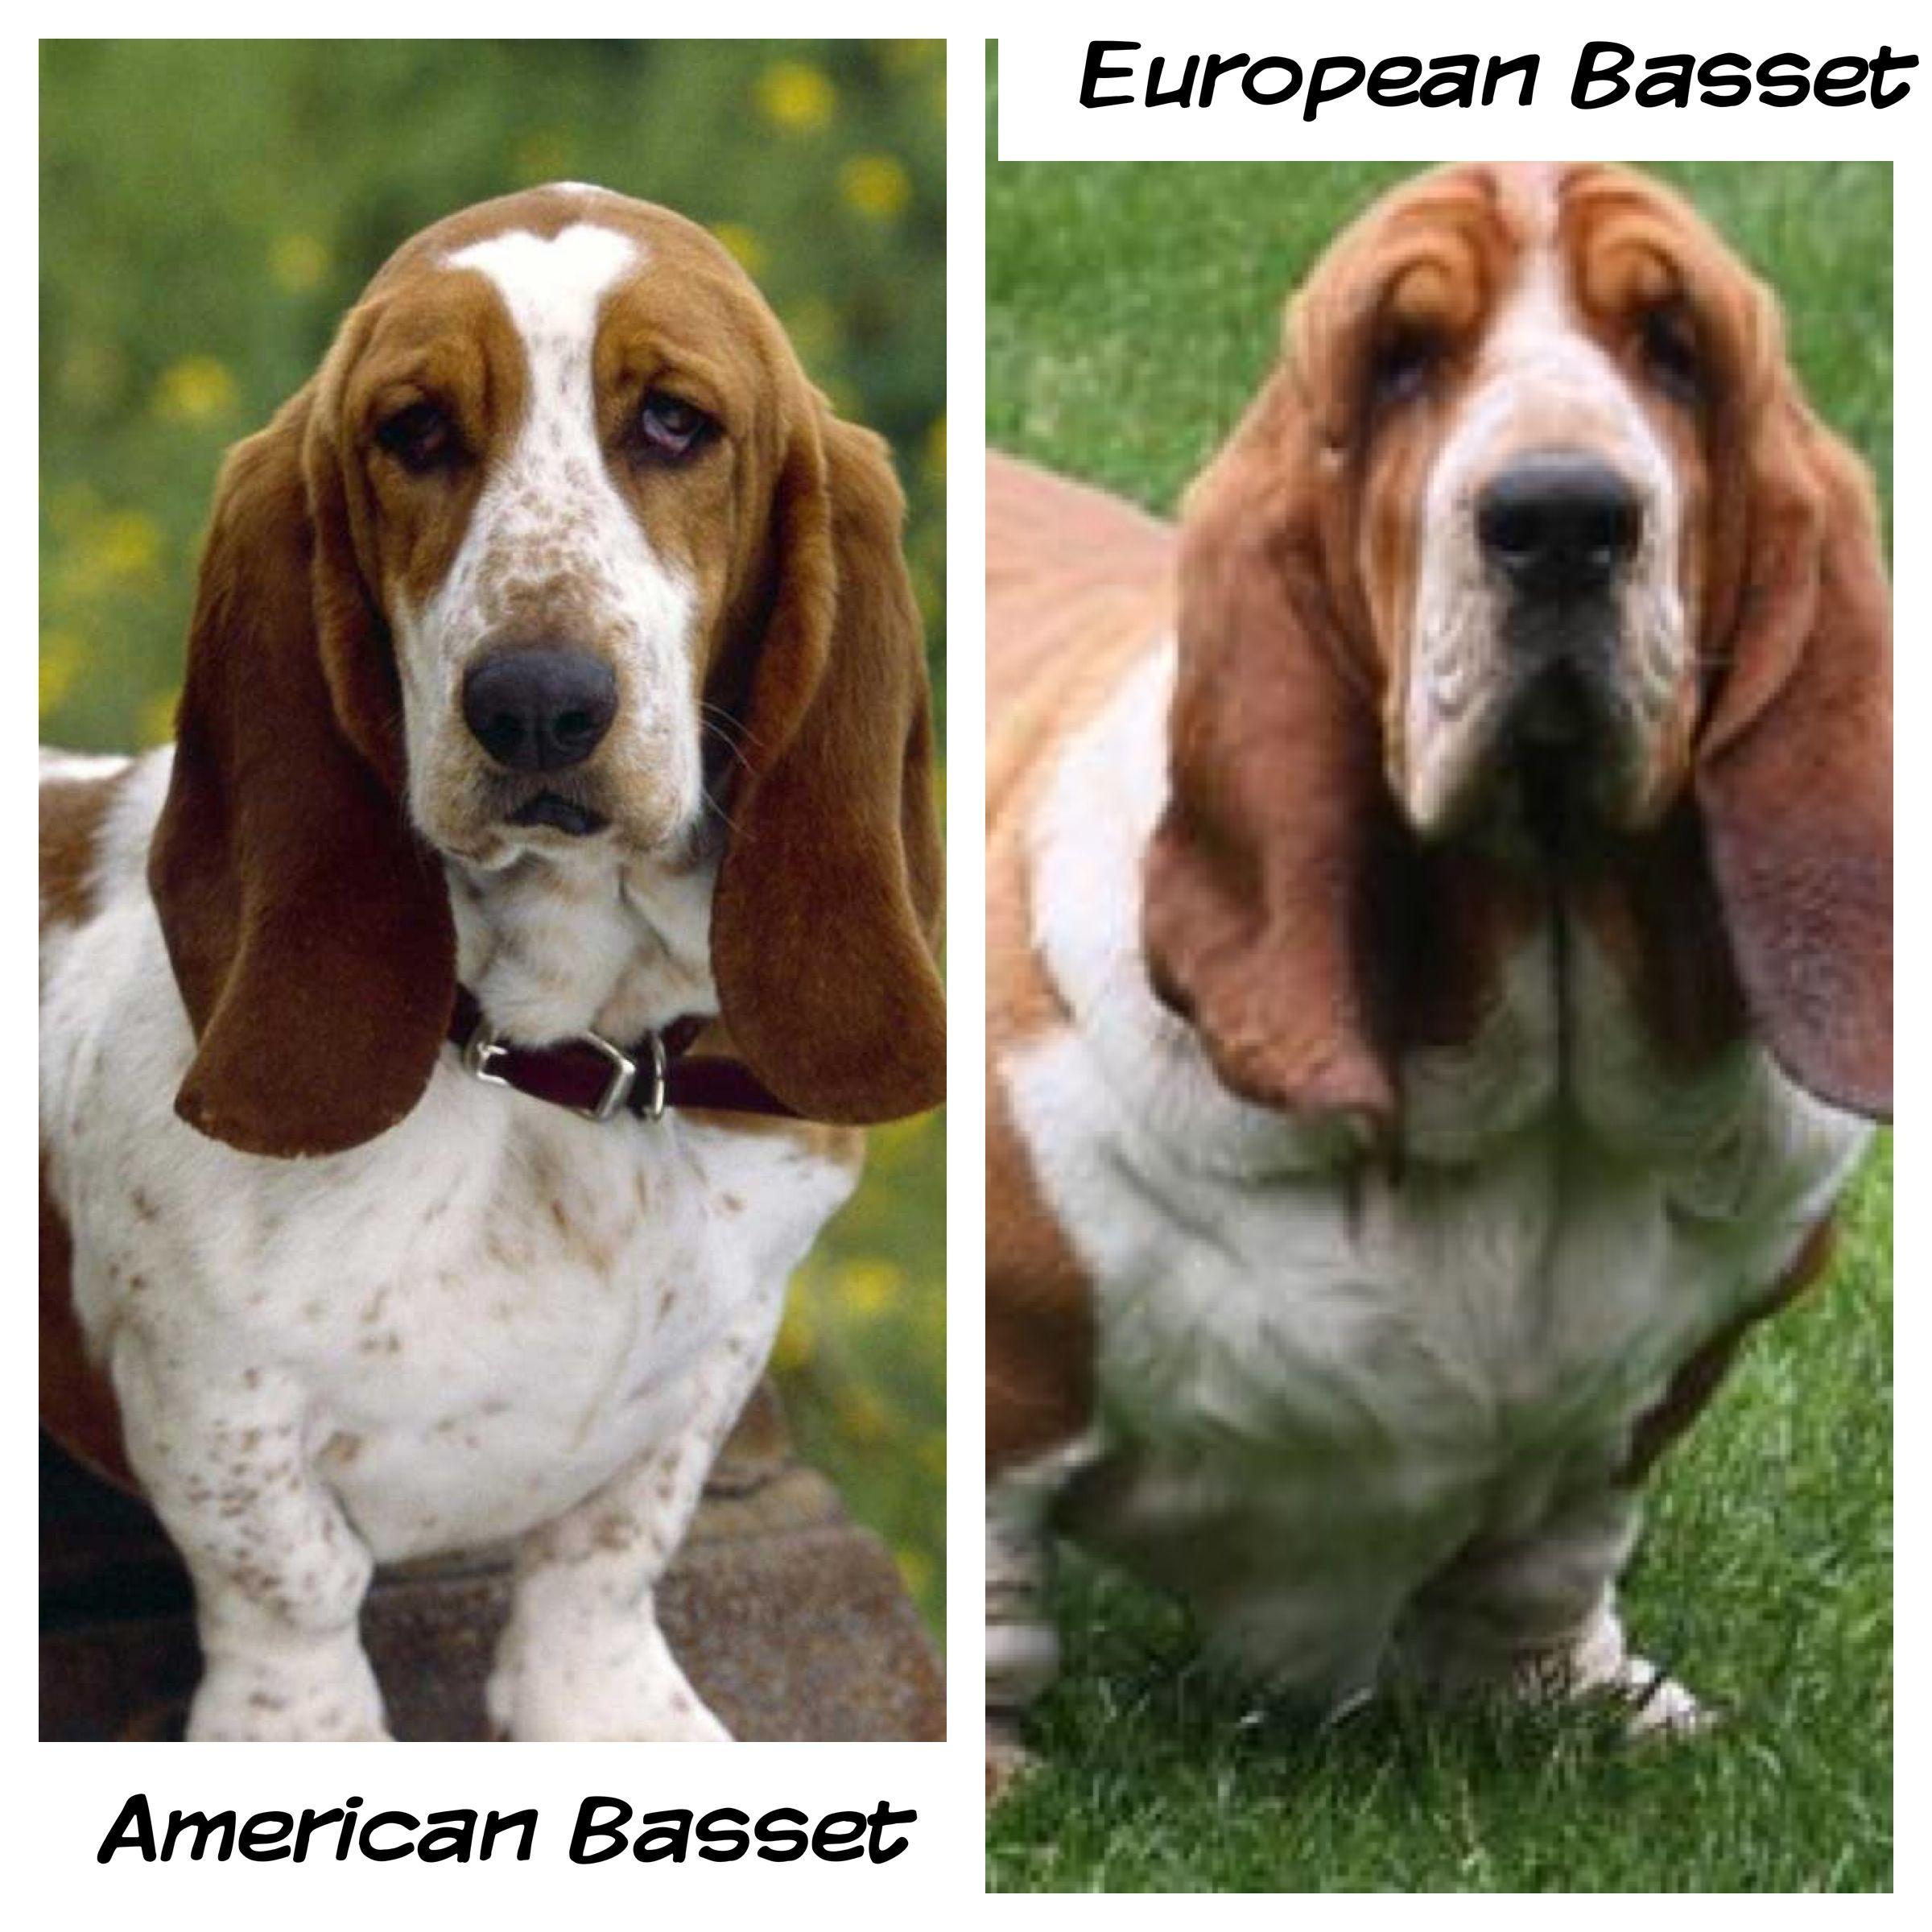 There Is A Difference Between The Two The European Basset Is